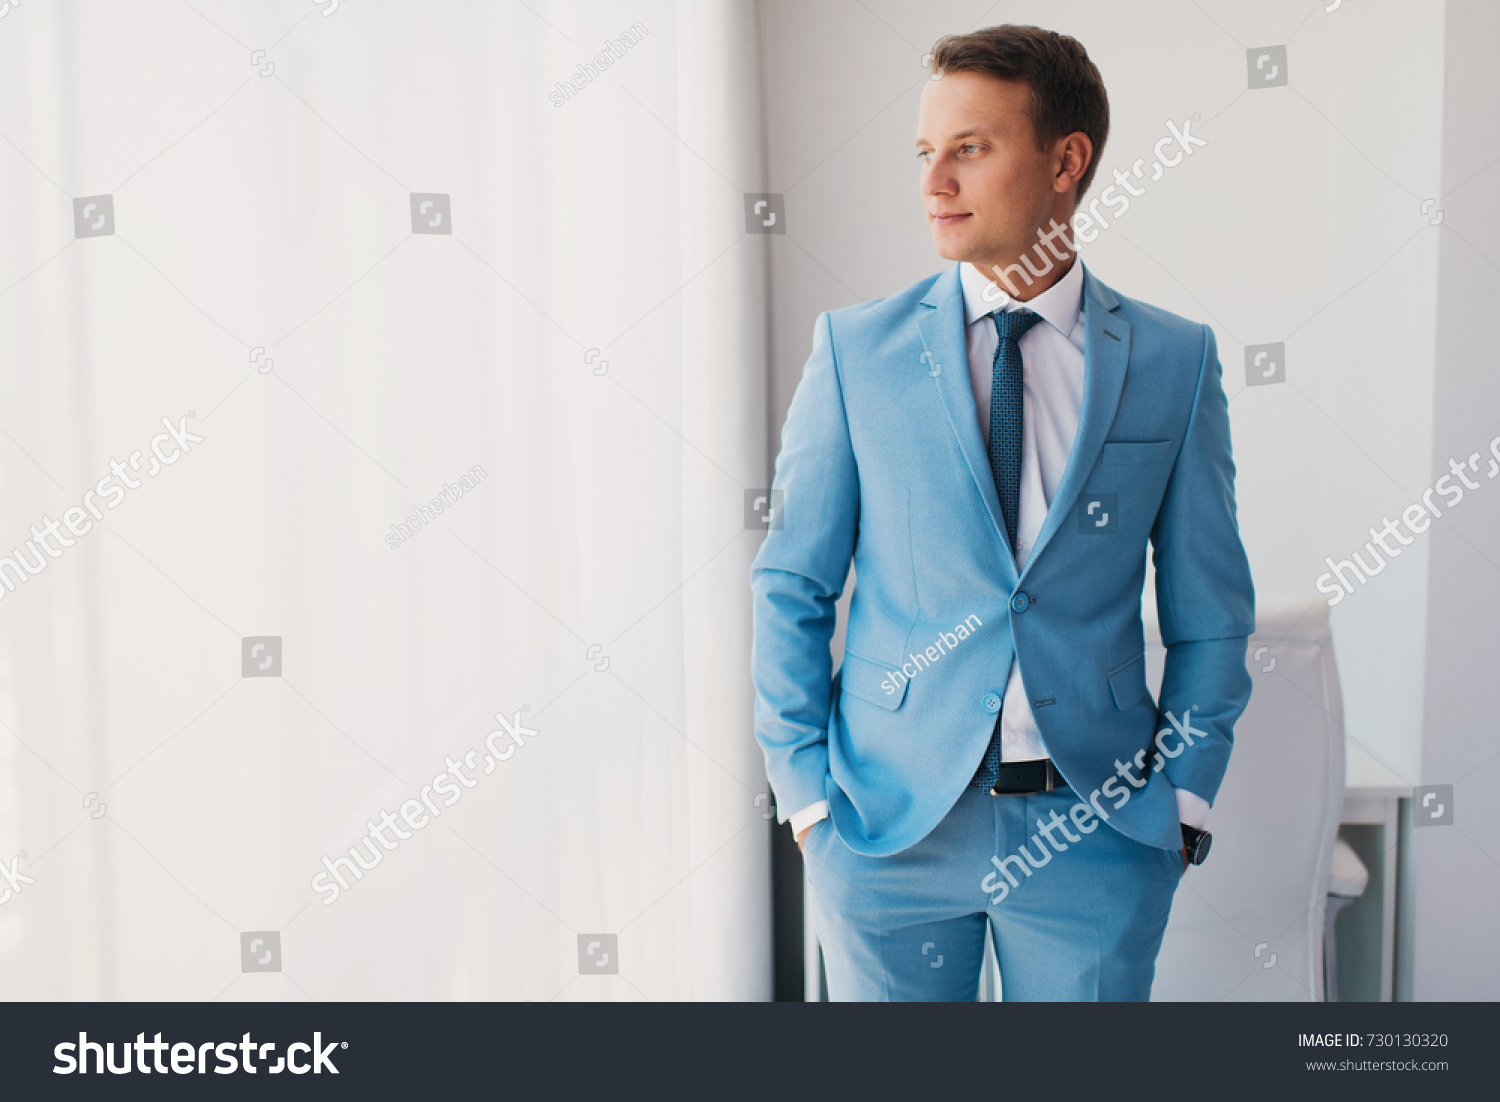 Handsome Man Blue Suit Portrait Young Stock Photo 730130320 ...